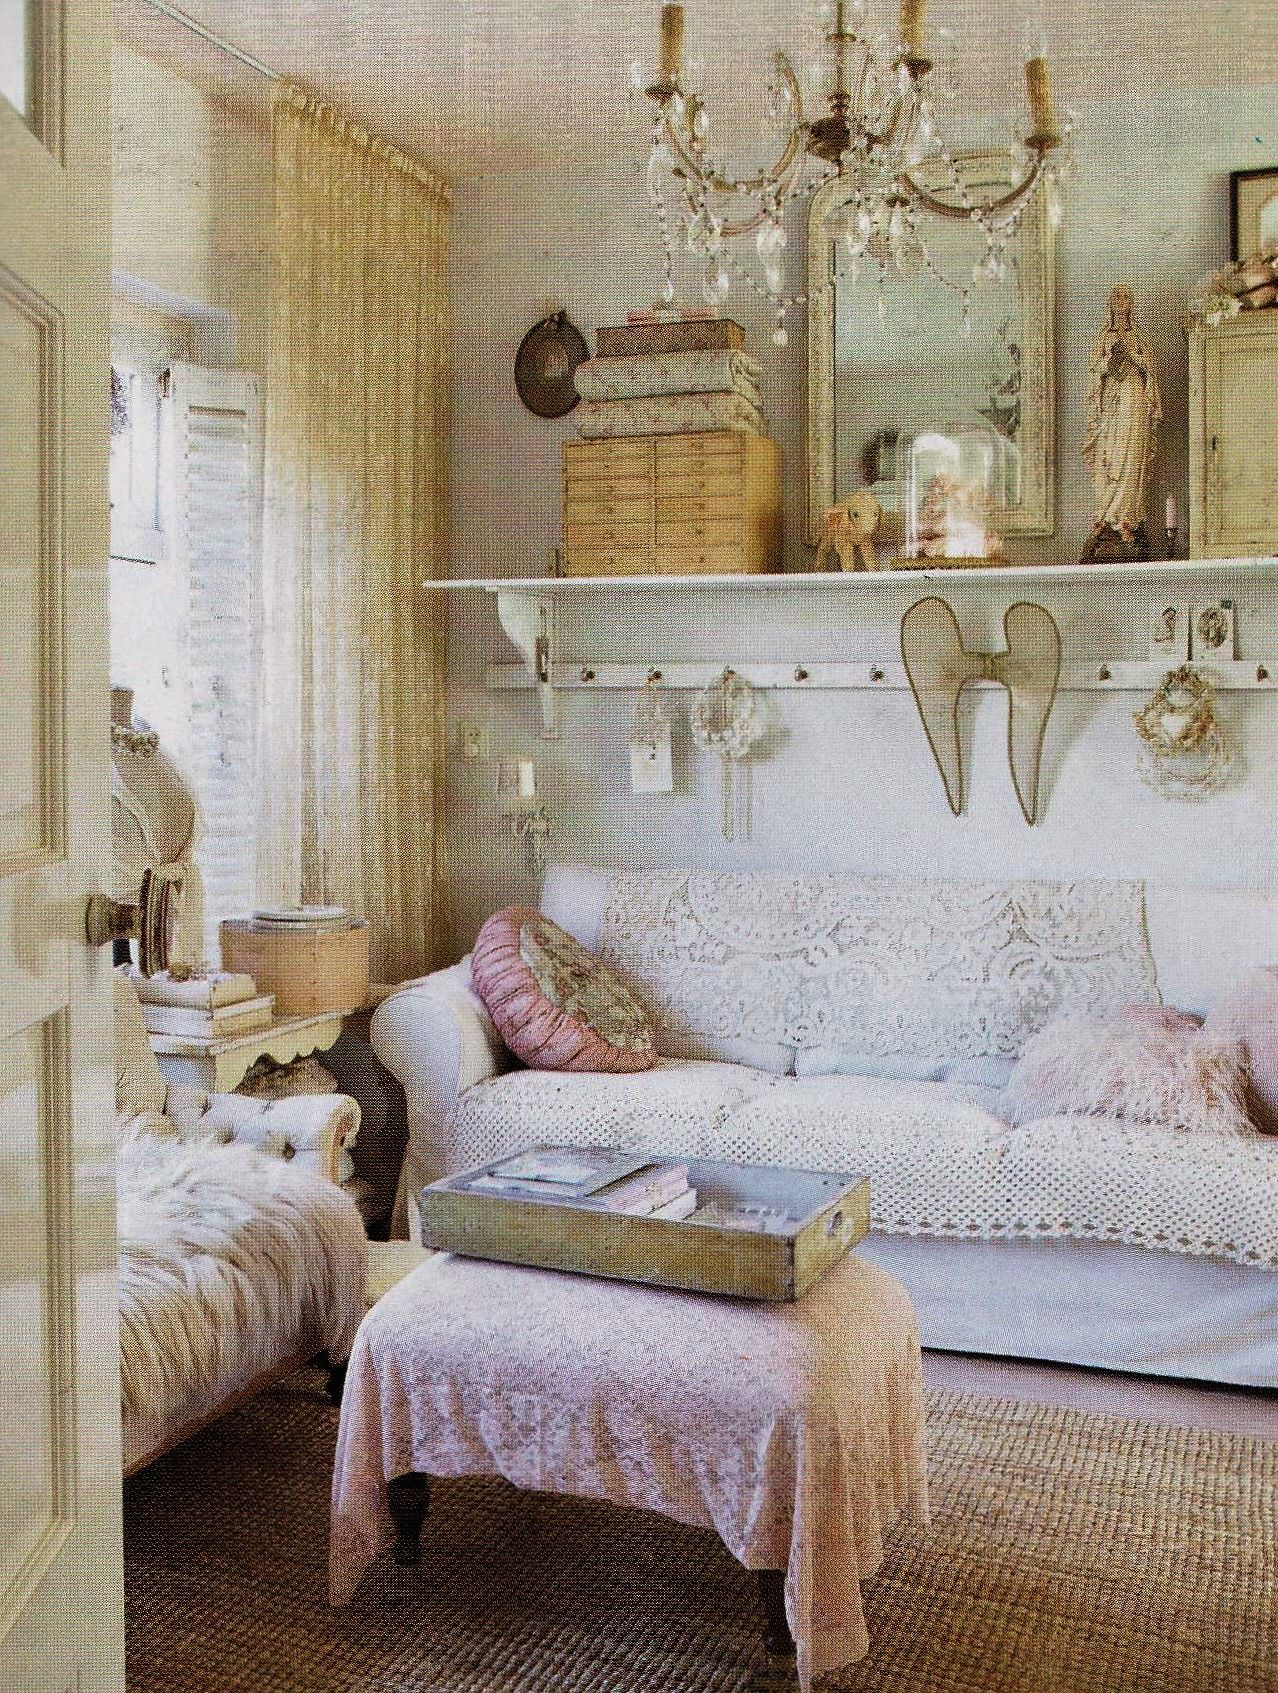 Shabby chic shabby chic pinterest shabby chic chic and shabby